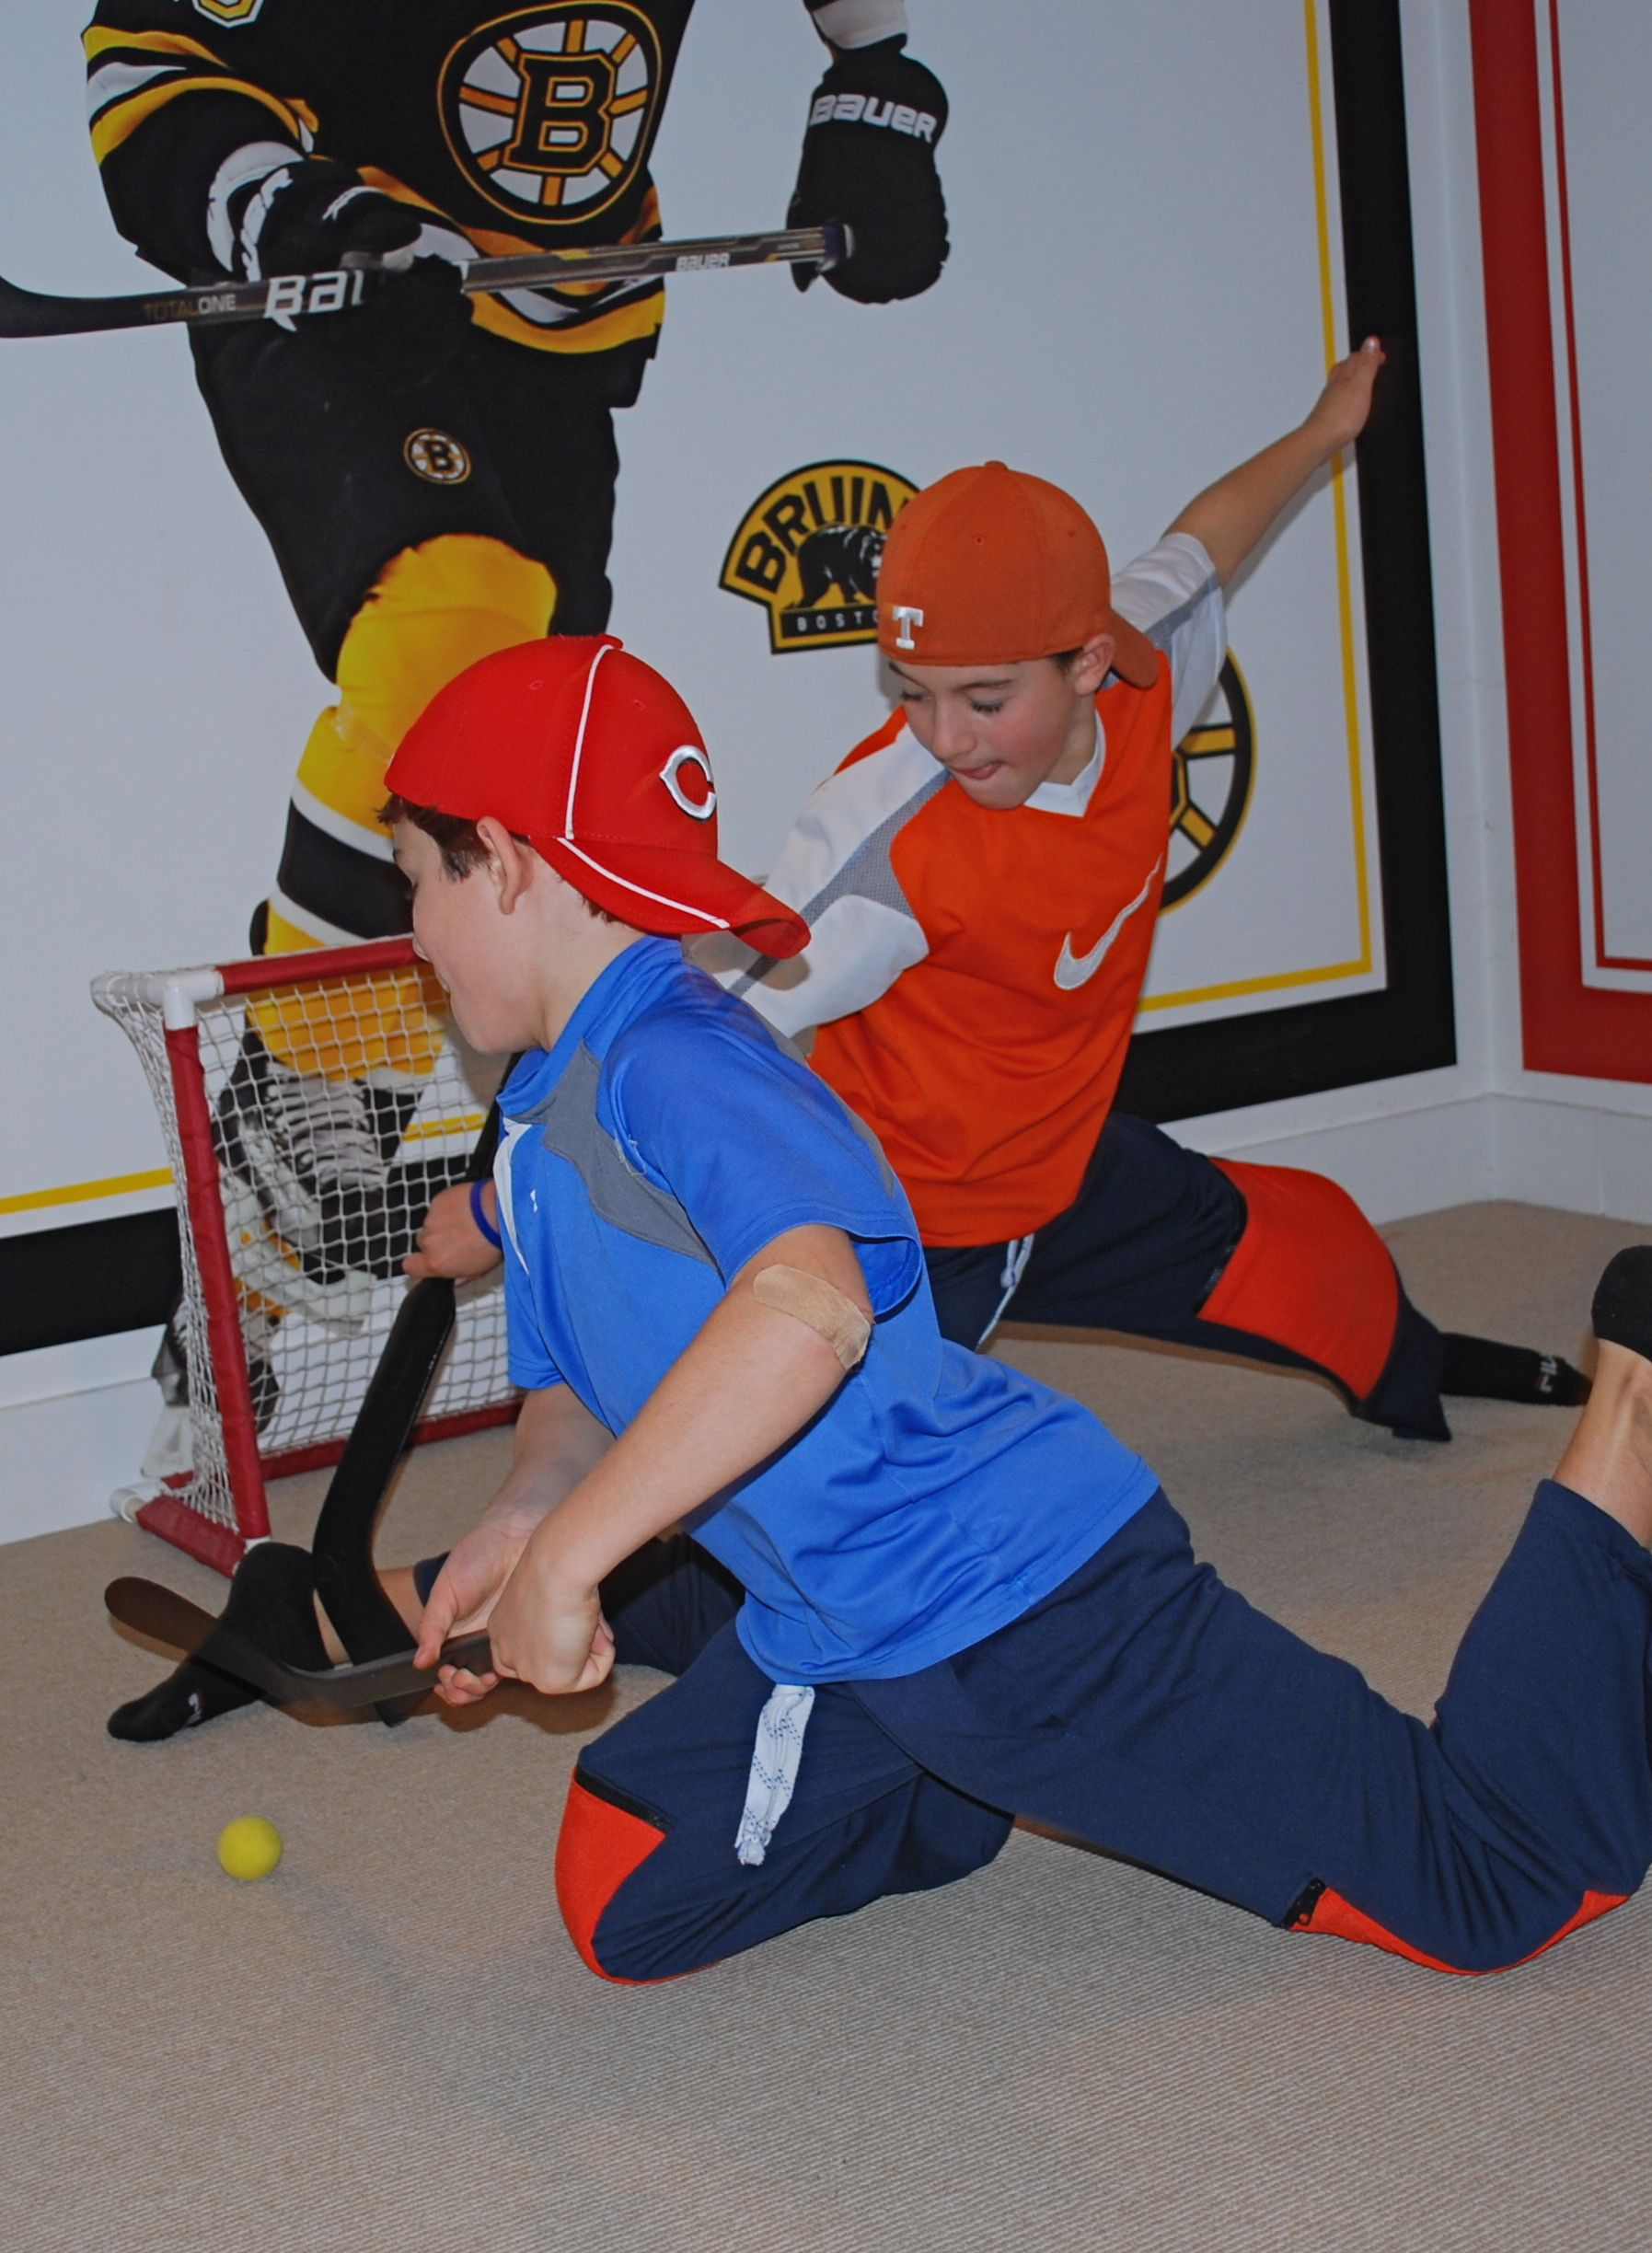 Playing Mini Hockey With Knockeys Knee Hockey Pants Put The Pads In To Play And Take Them Out To Wear To The Rink To The Hockey Pants Hockey Room How To